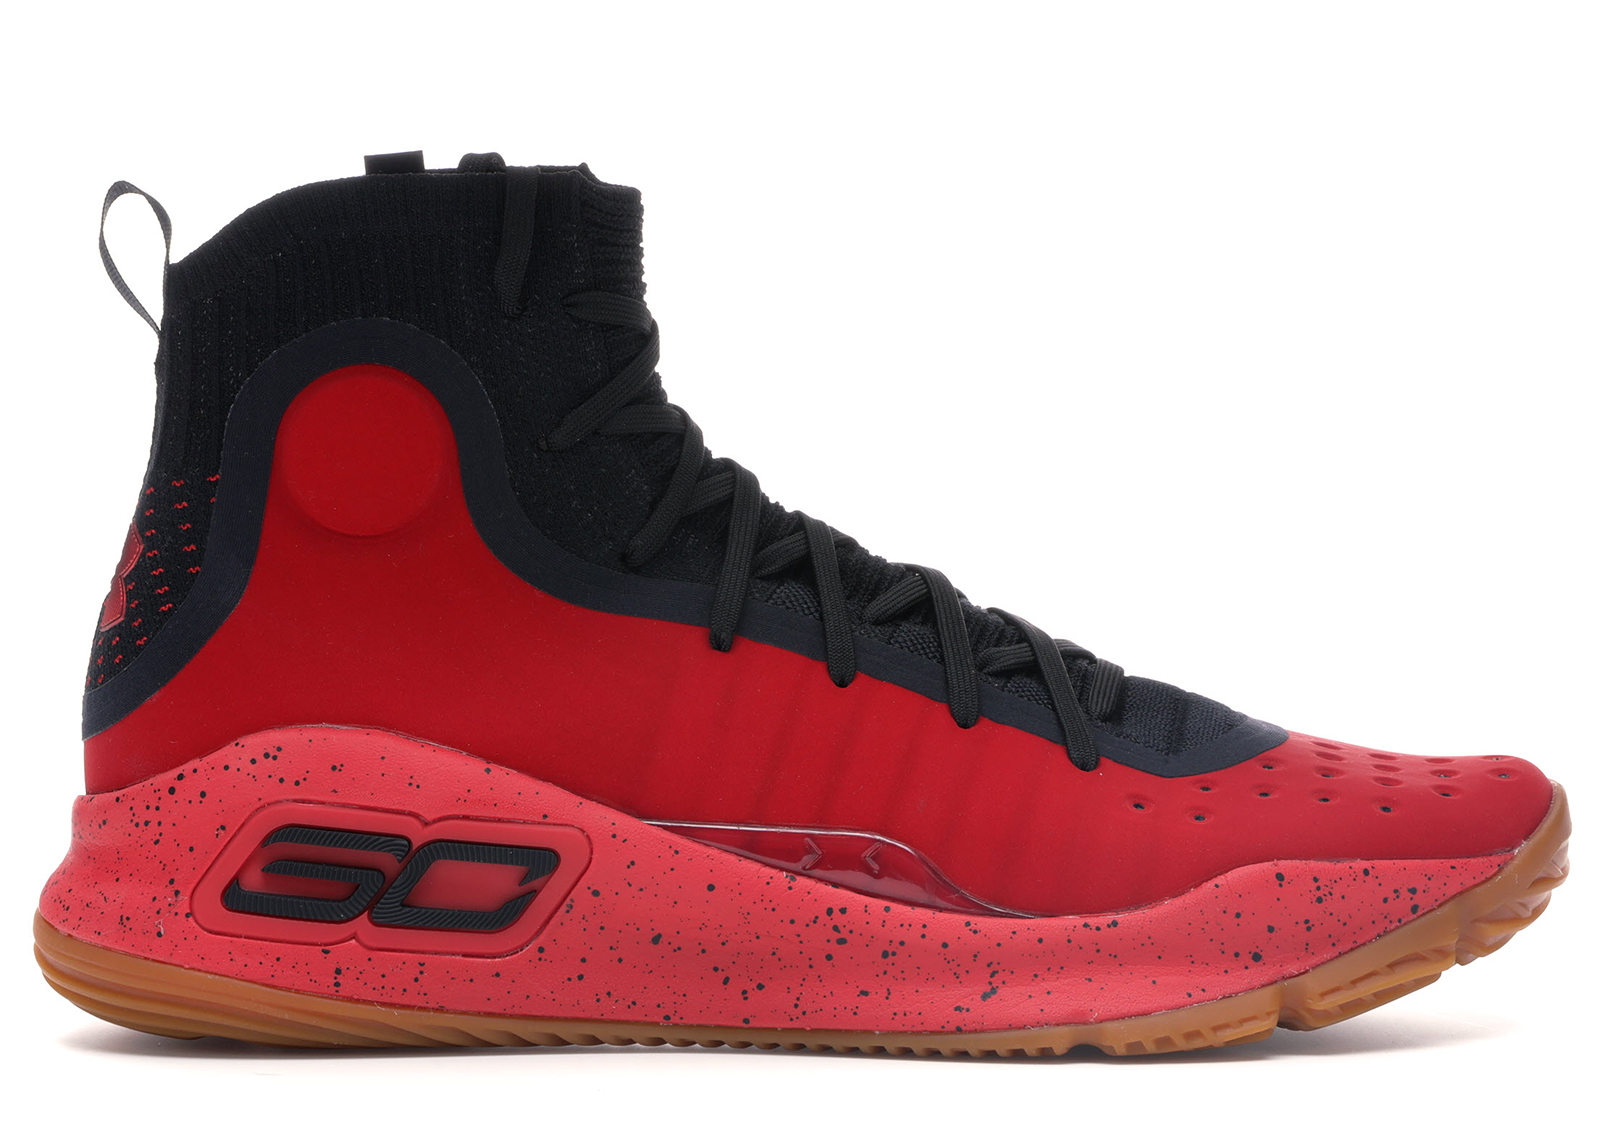 Under Armour Curry 4 Red Black Gum